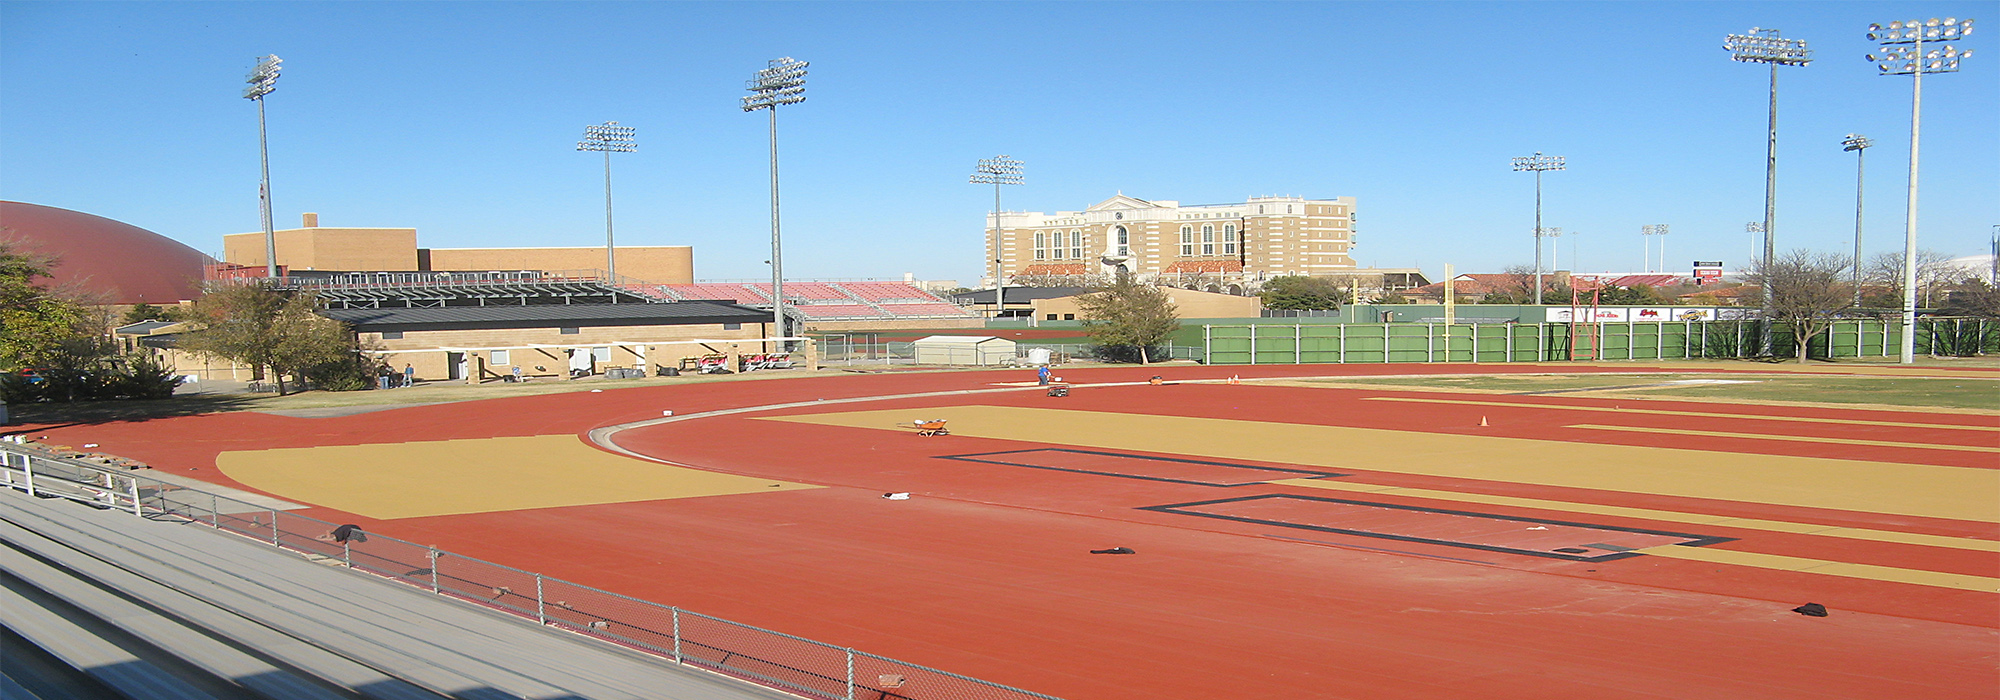 Texas Tech University Track and Field